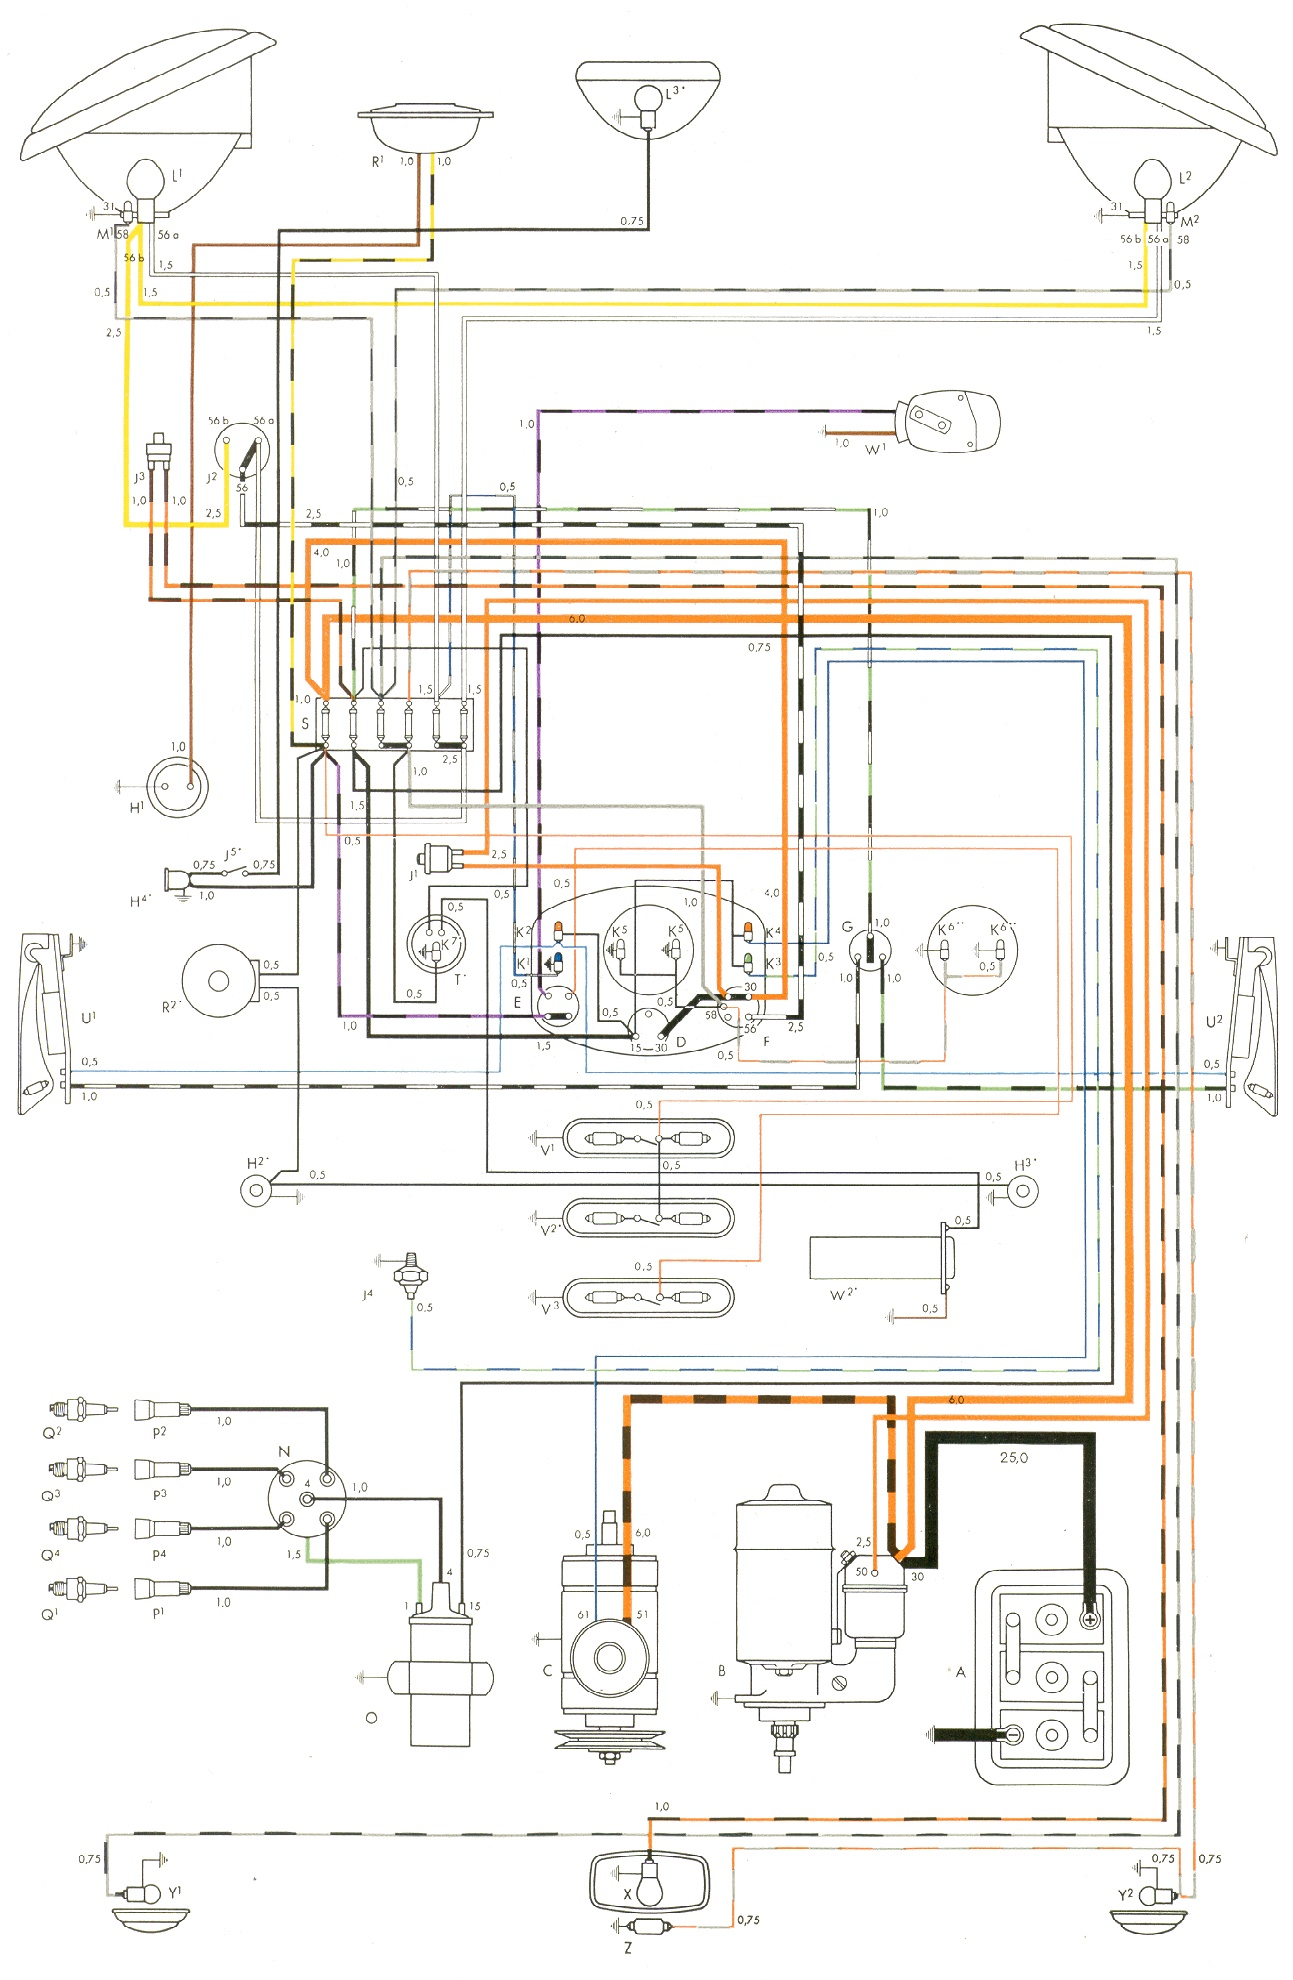 Vw Bus Coil Wiring Diagram Just Another Blog Point Type Ignition Schematic Schema Diagrams Rh 39 Justanotherbeautyblog De Voltage Regulator With Points